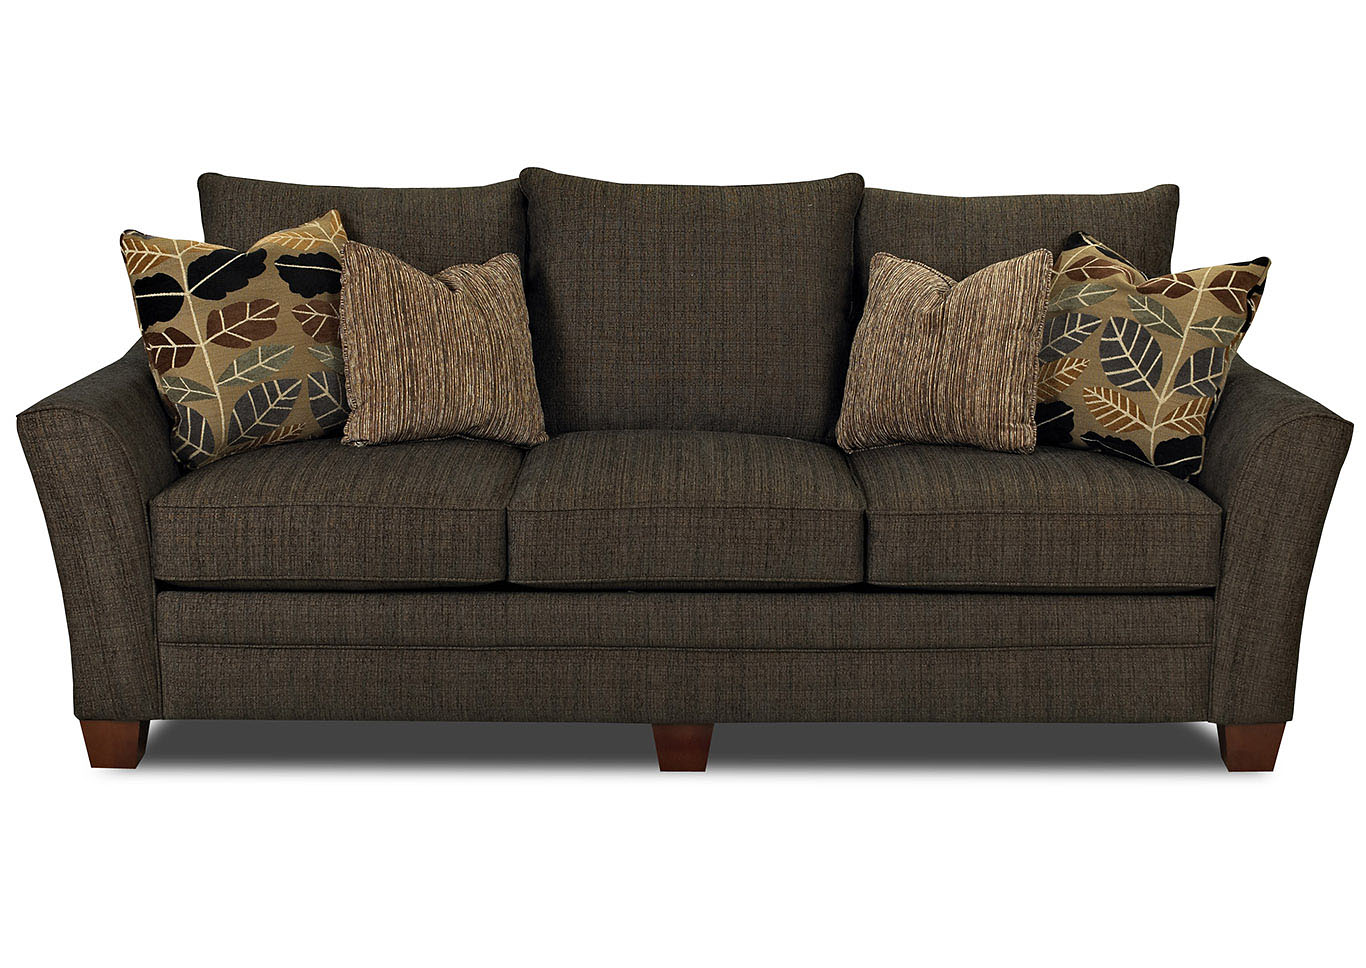 Posen Dark Brown Stationary Fabric Sofa Jesup Furniture Outlet